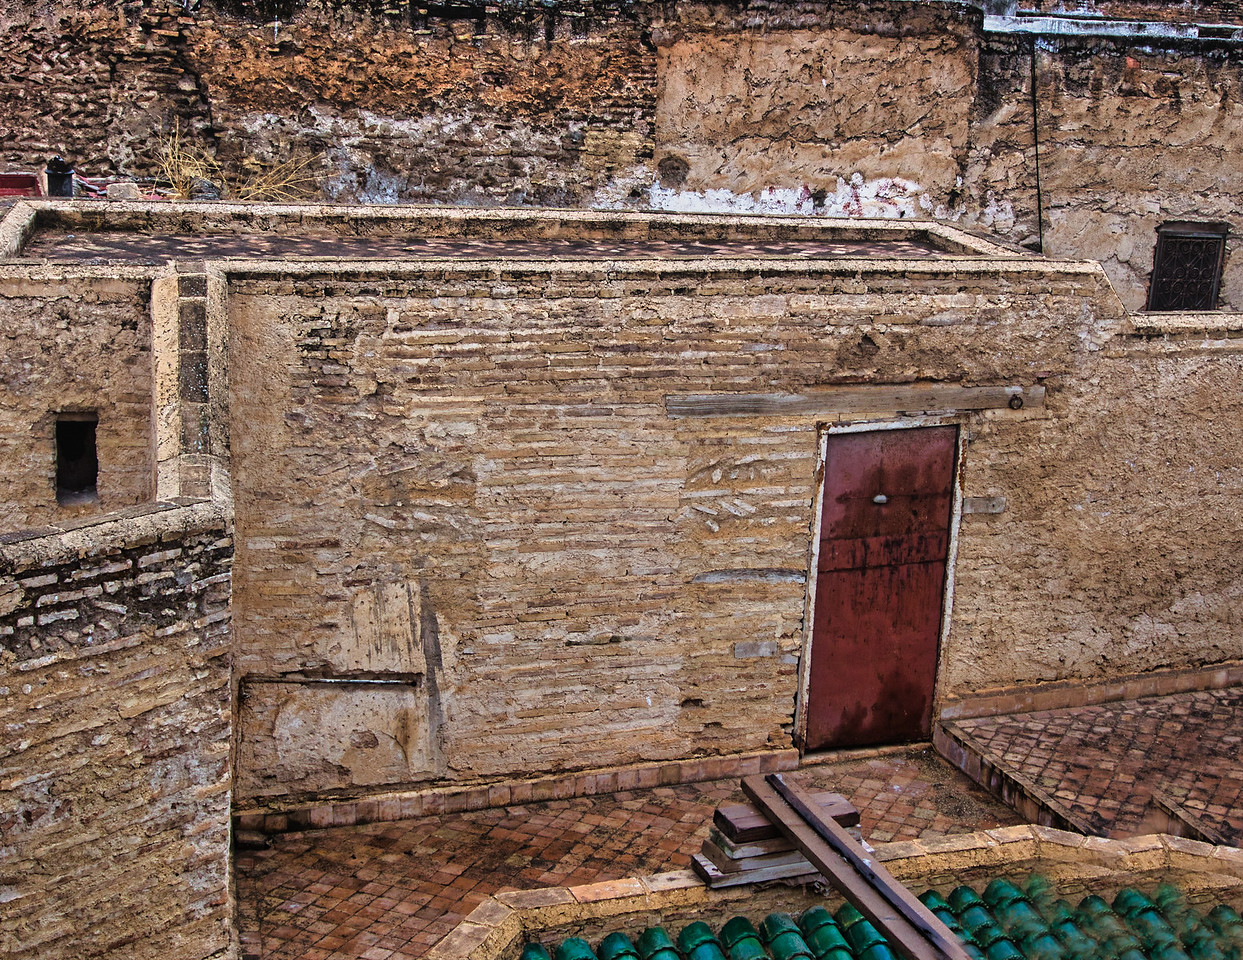 Doorway and wall, deep in the heart of the Fes Medina in Morocco